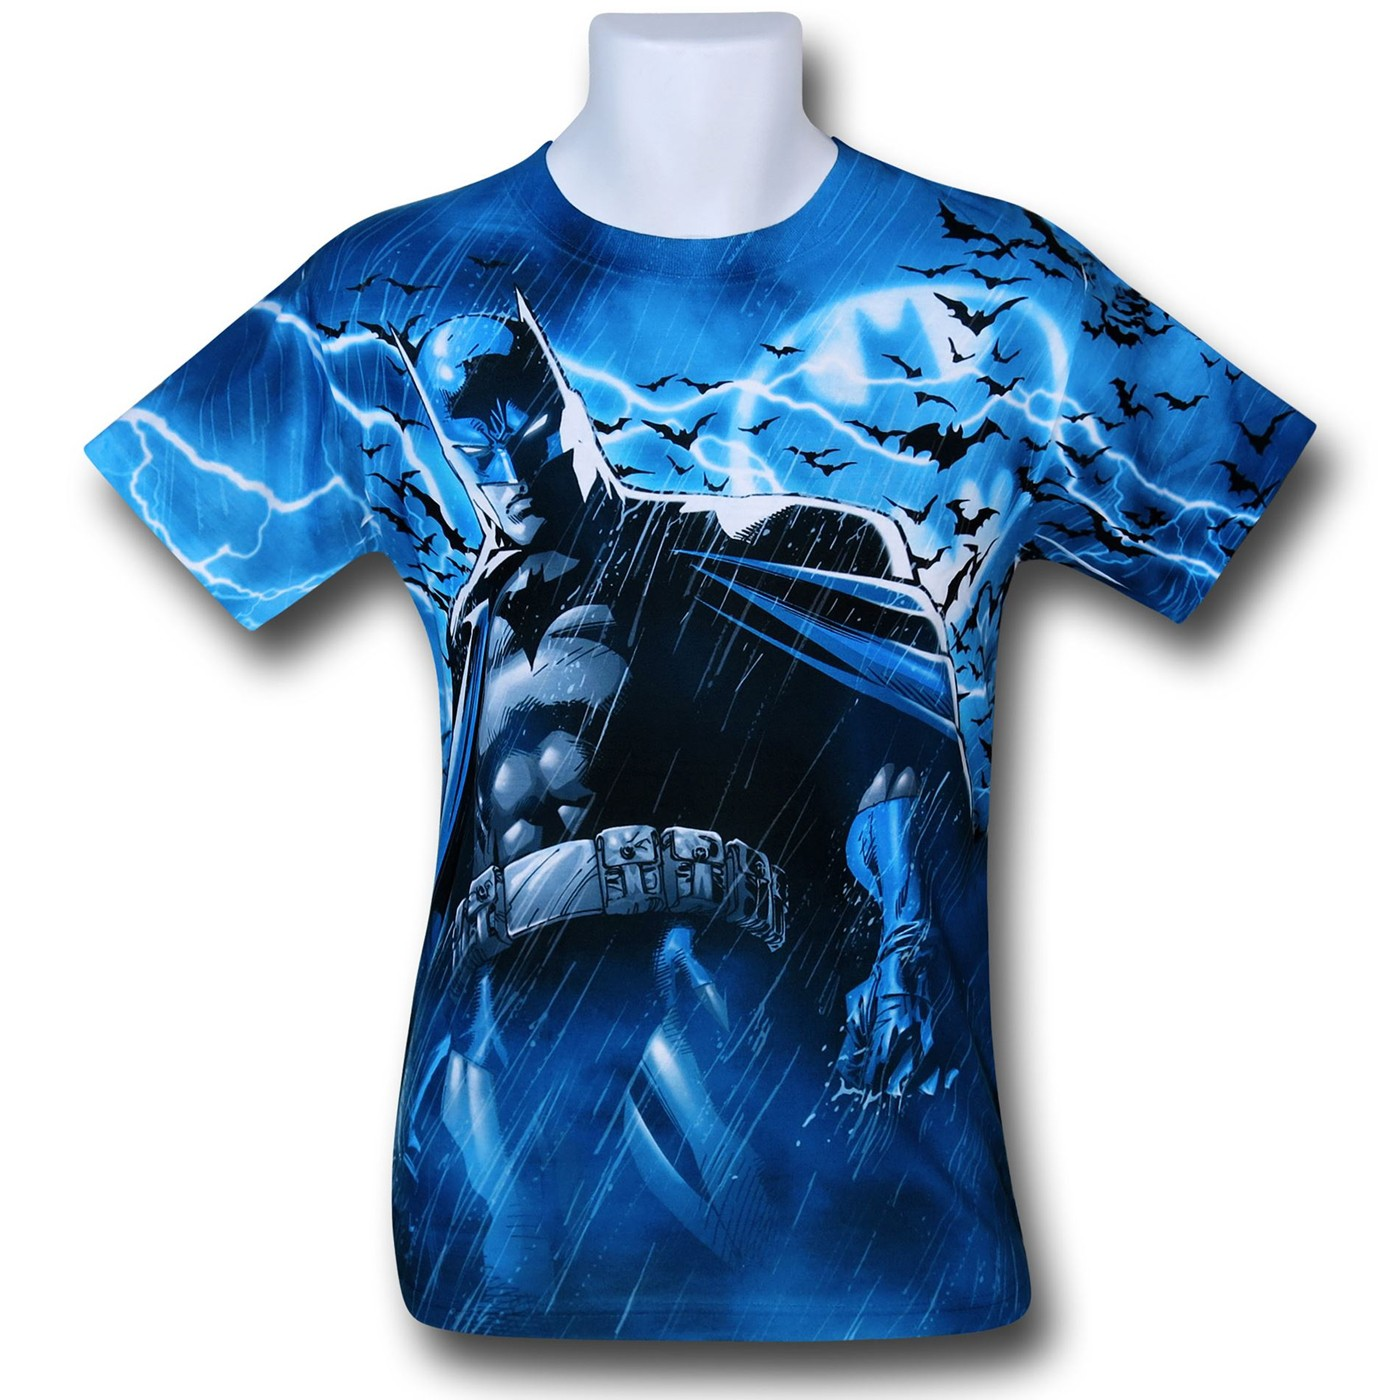 Batman Stormy Knight Sublimated T-Shirt